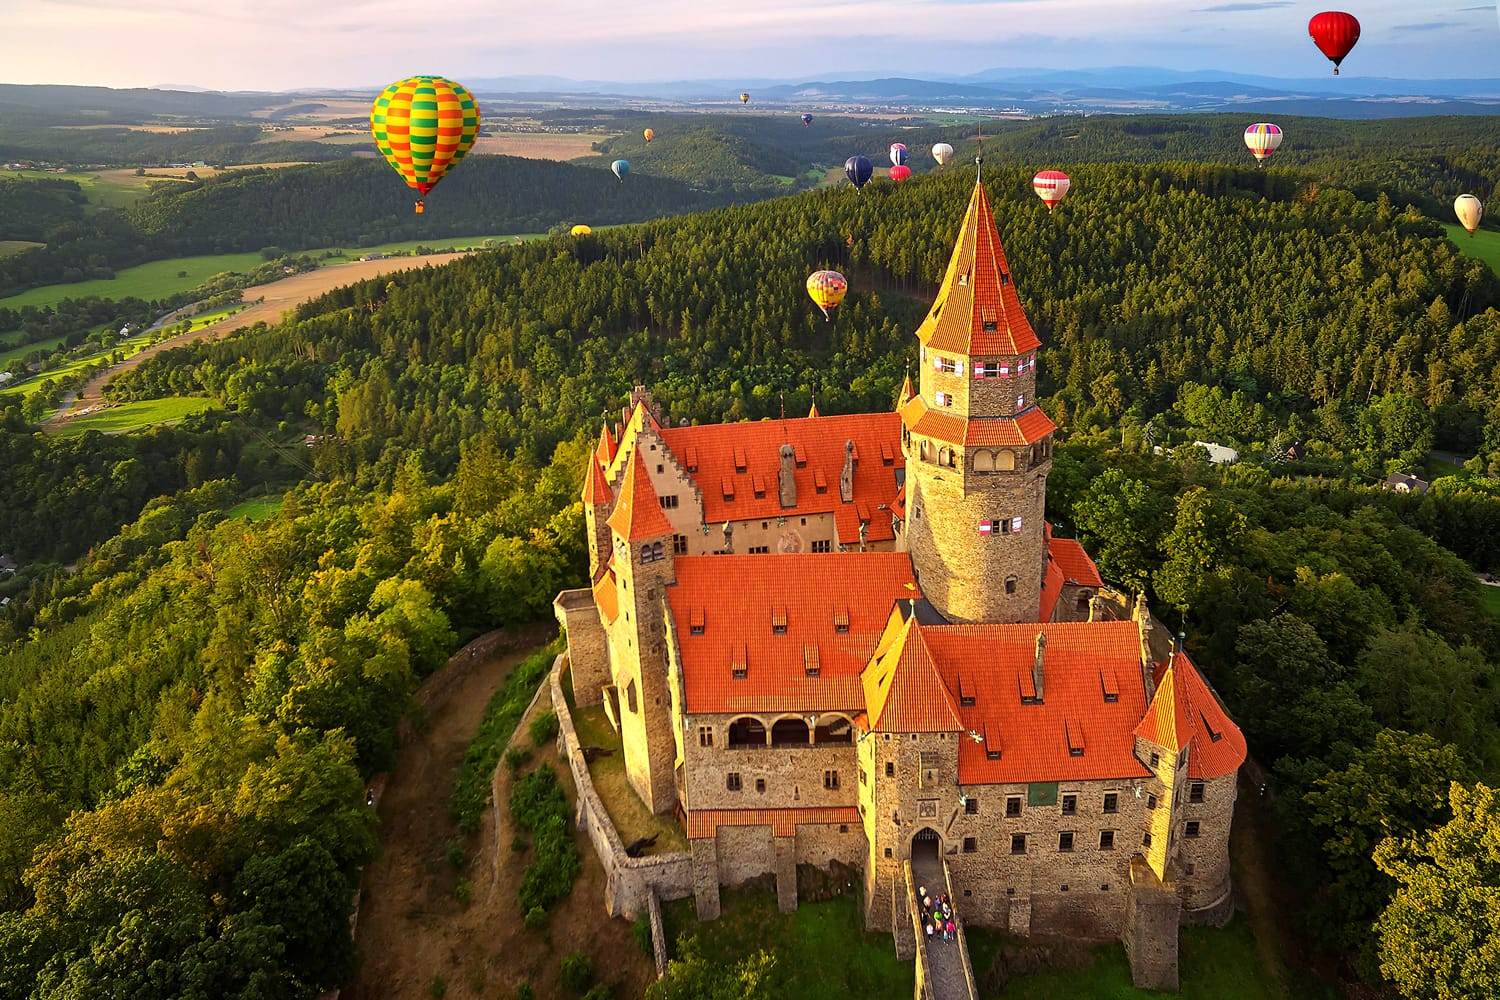 Aerial view on romantic fairy castle with group hot air balloons in picturesque landscape lit by evening sun. Moravia, Czech republic.